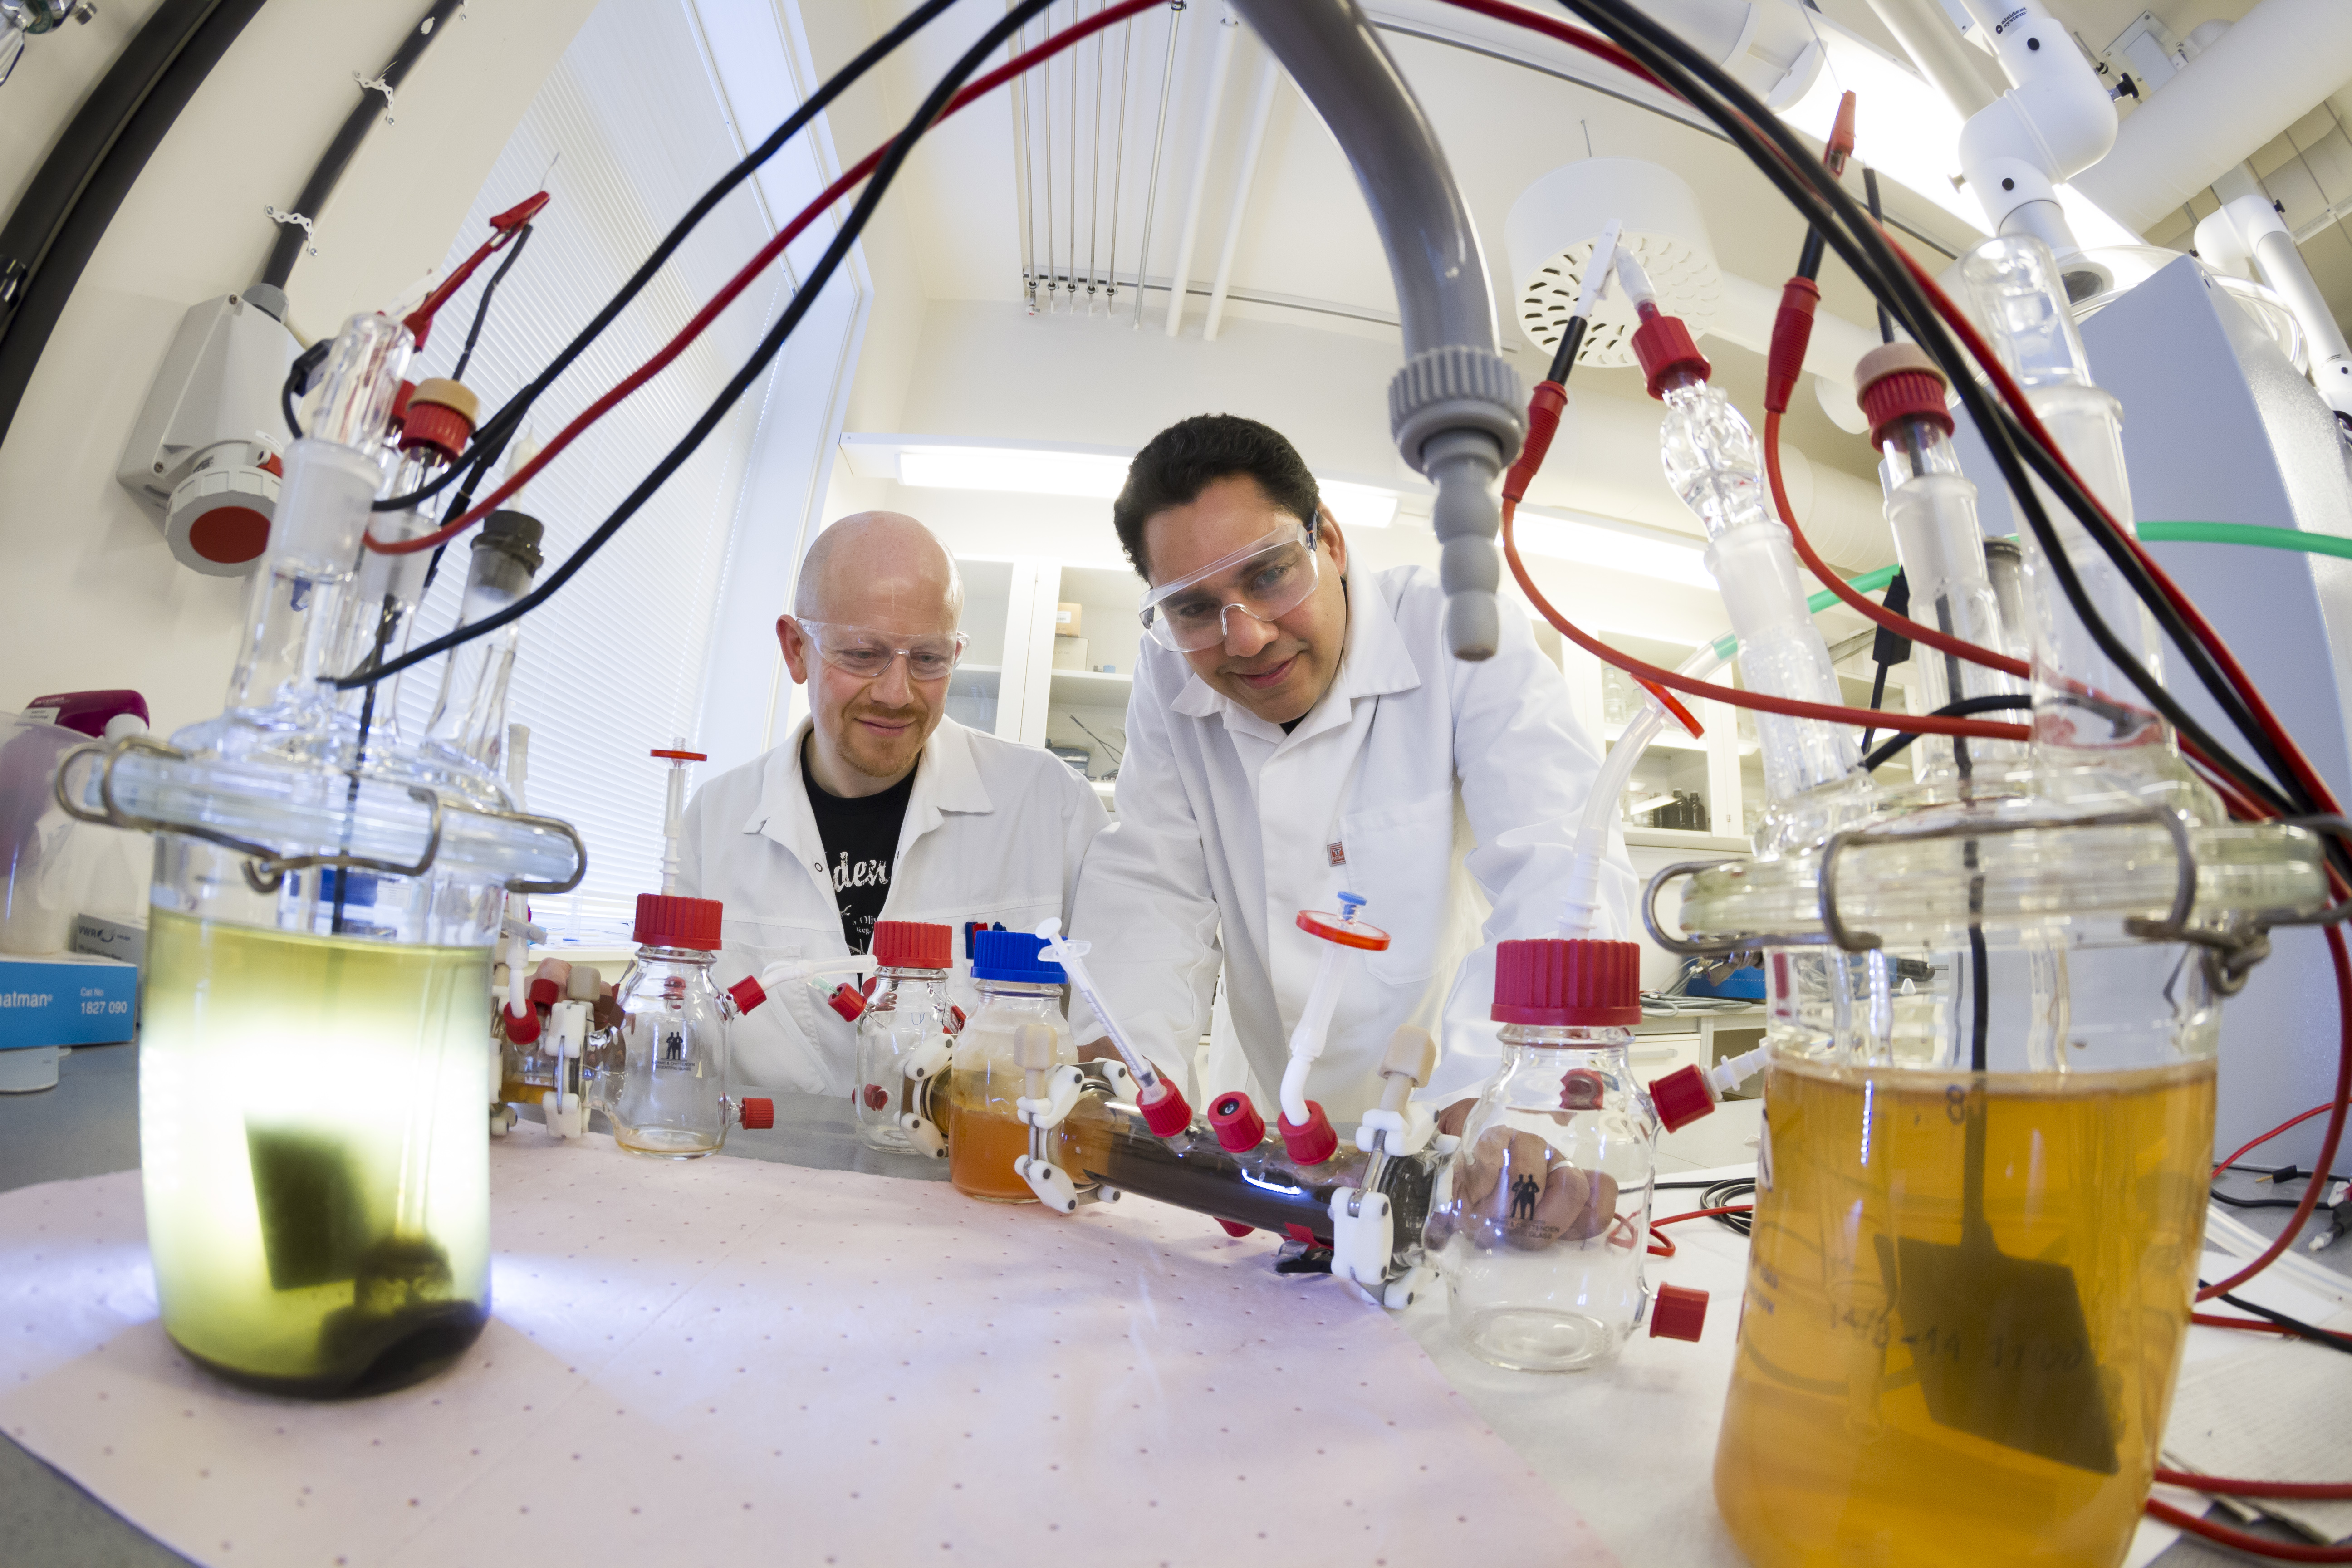 When biologist Netzer (left), who specialises in bioprocesses, met electrochemist Colmenares, whose field is water purification, they came up with the idea of a practical, microbial, energy-generating water purification system.  Today their demonstration plant is up and running. Photo: Thor Nielsen/SINTEF